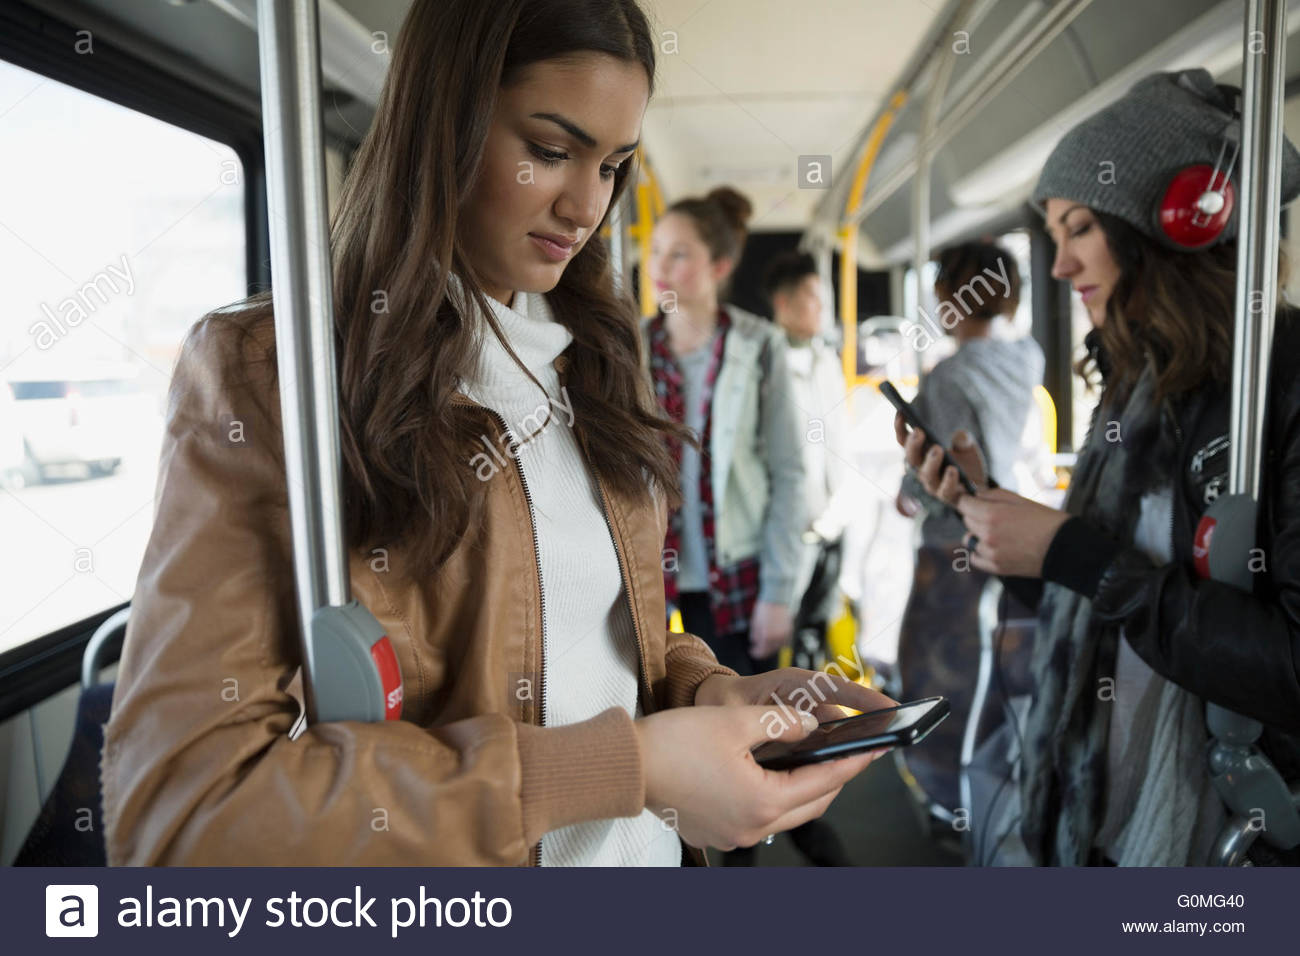 Teenage girl texting cell phone standing on bus - Stock Image